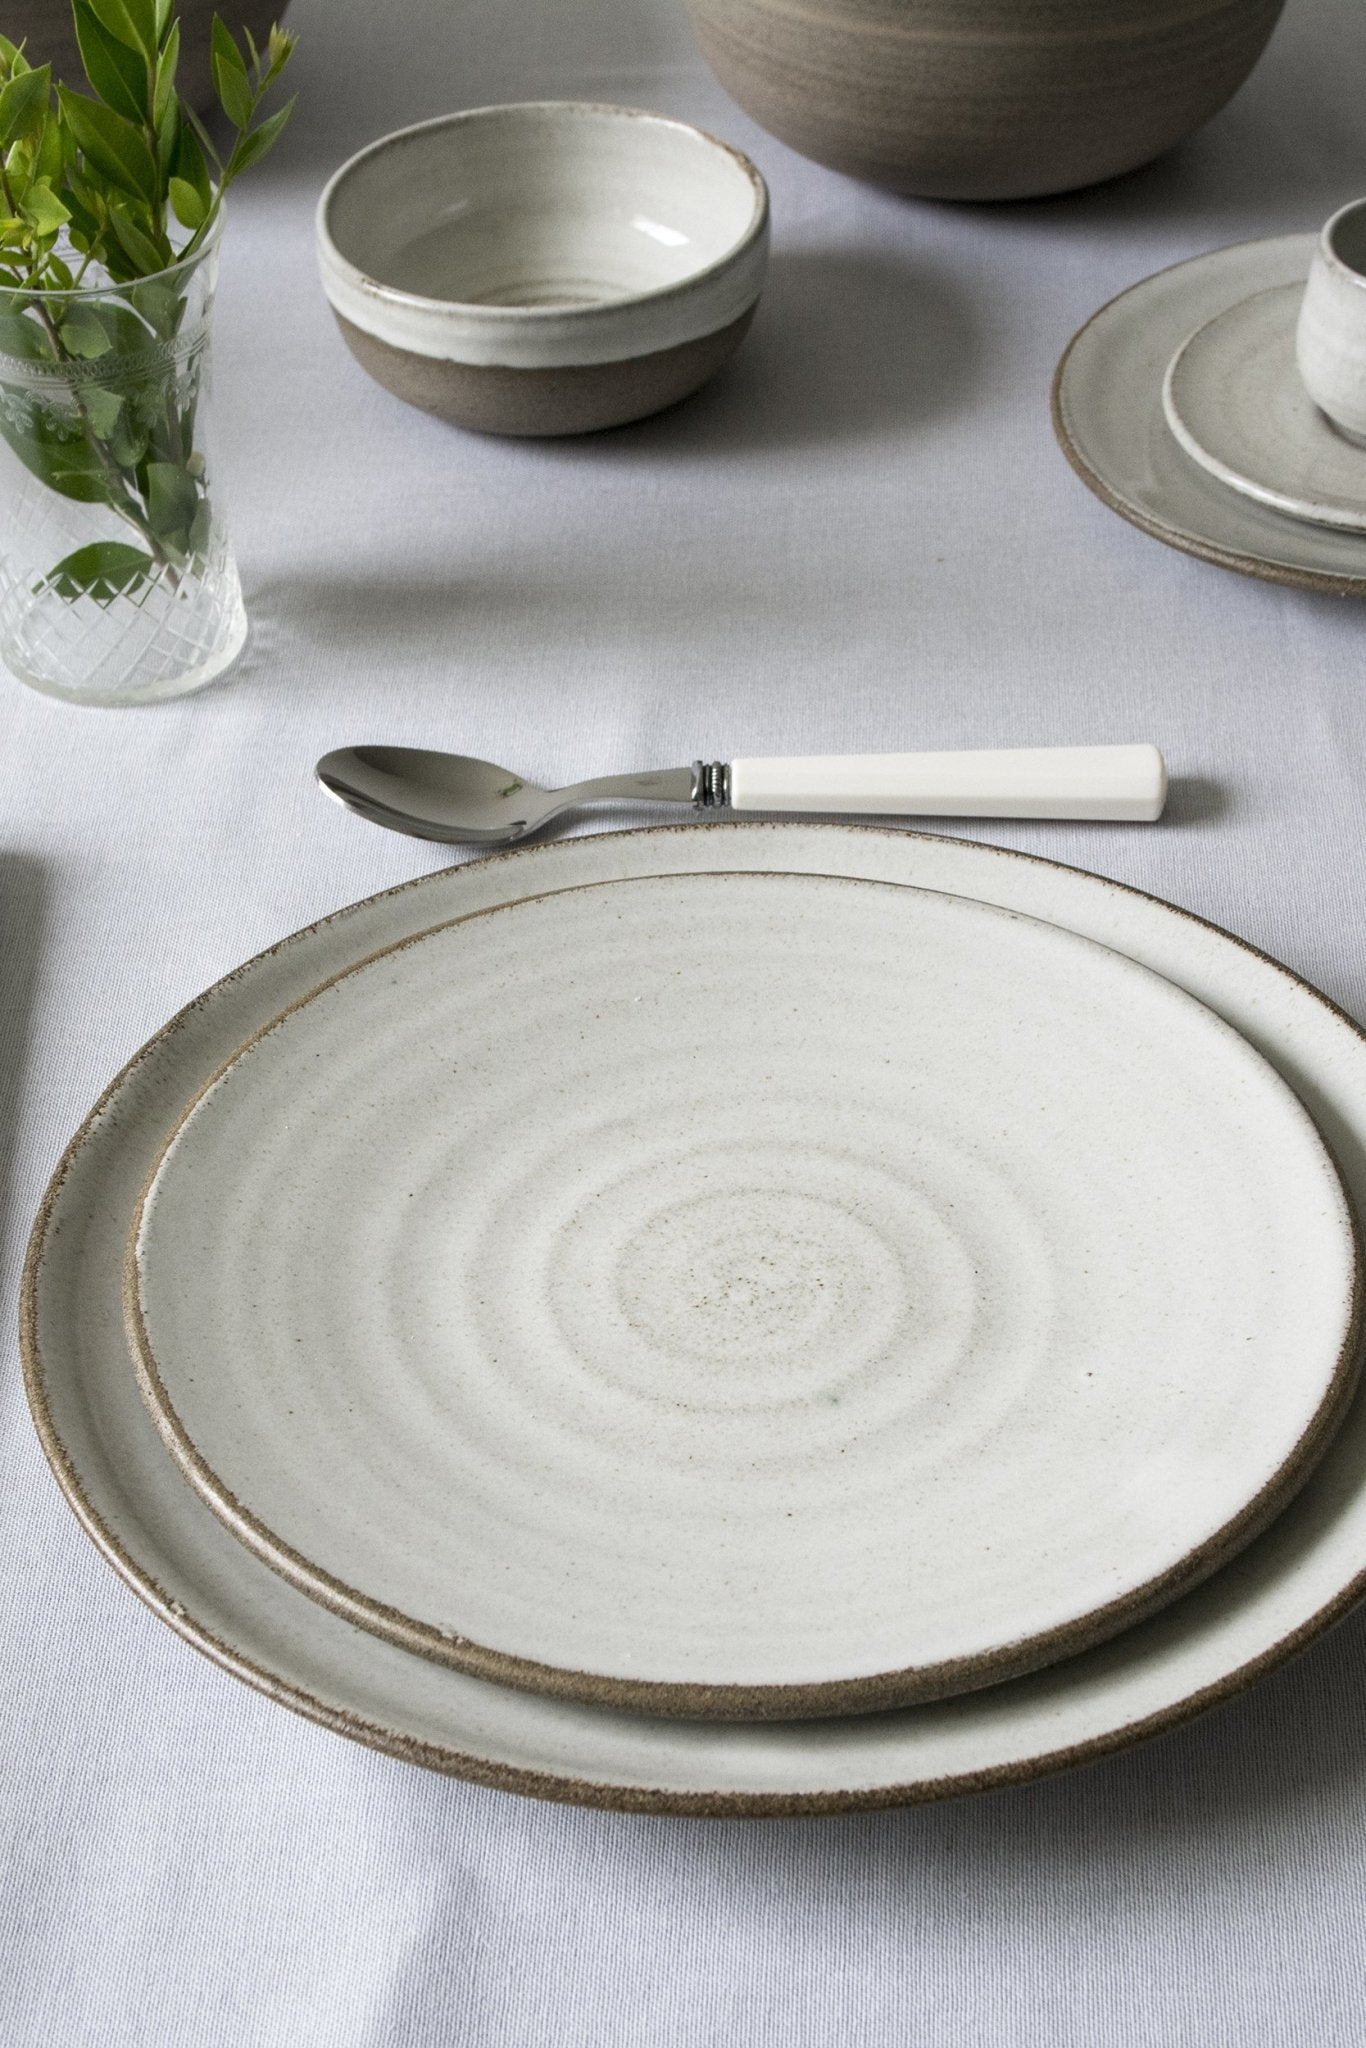 Pottery Dinnerware, Main Course and Salad Plate, 2 Plates - Mad About Pottery- plates